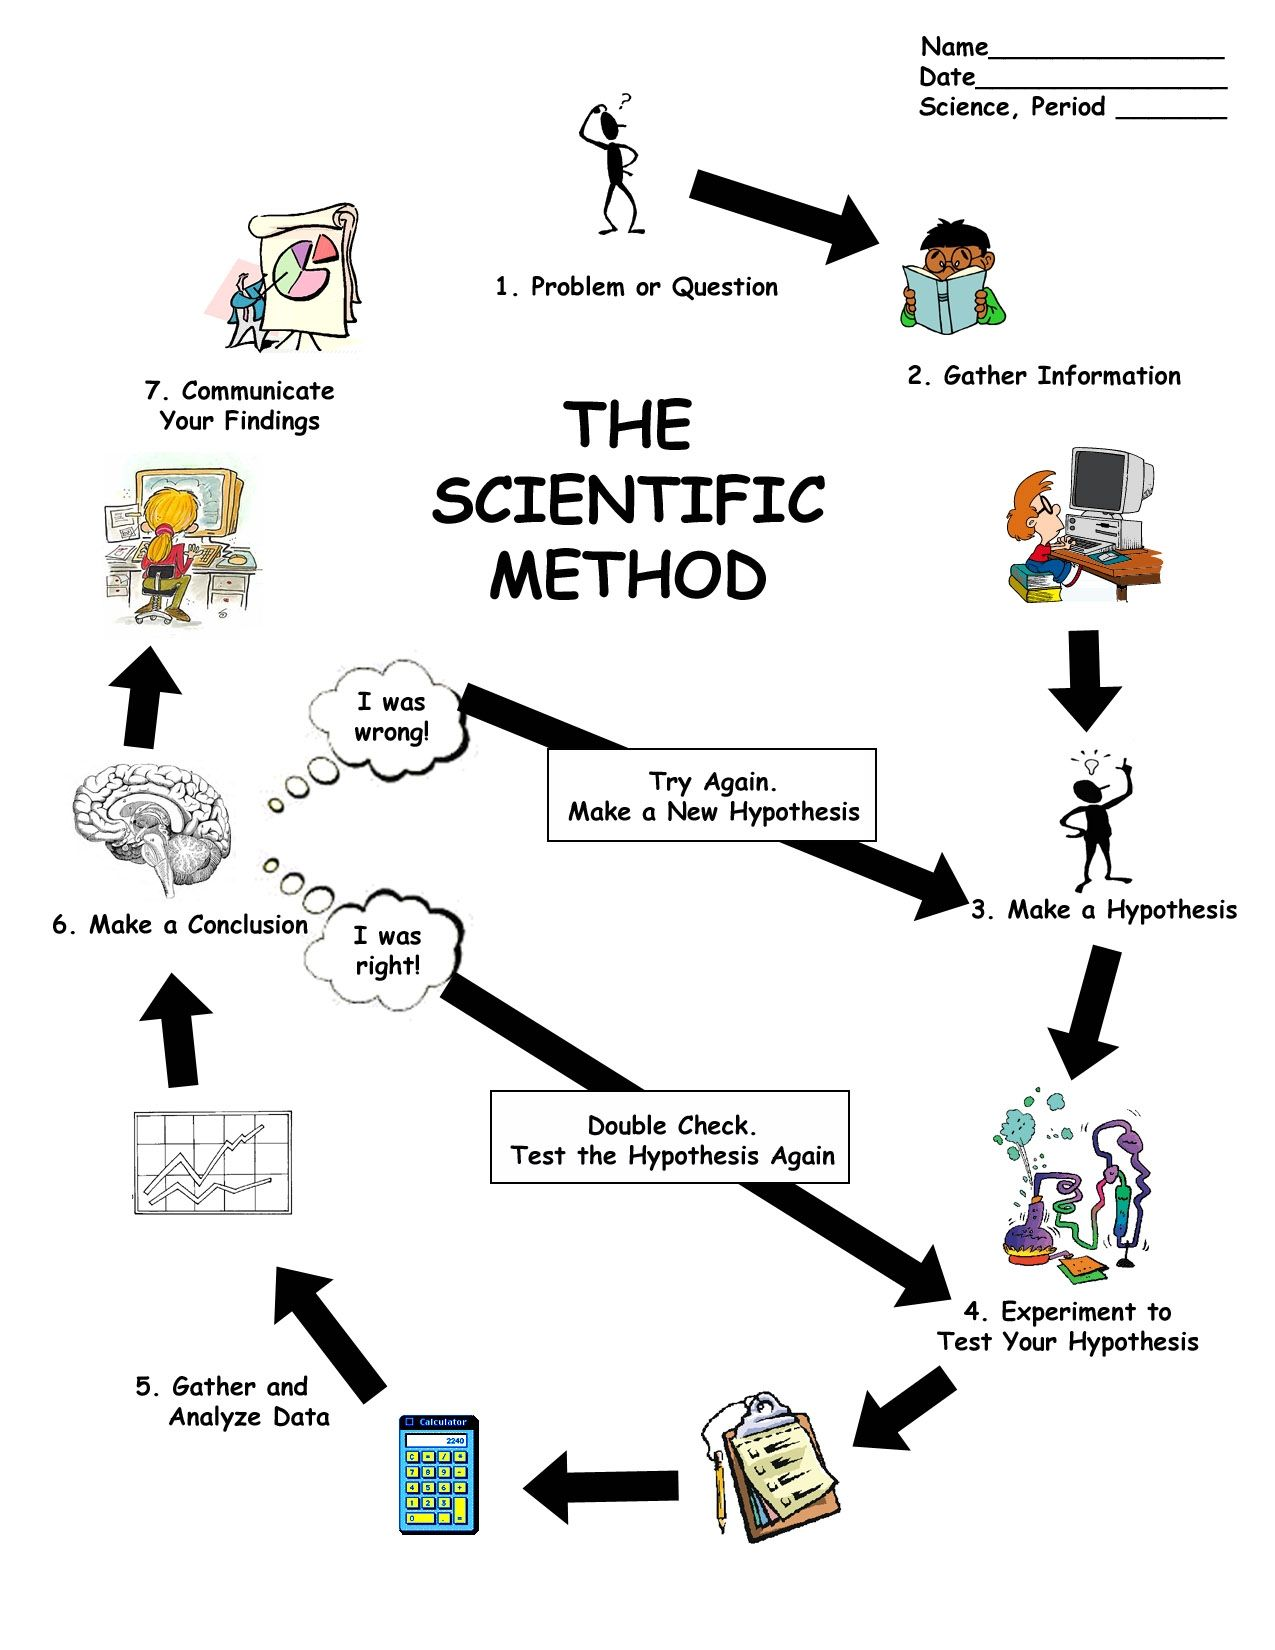 Ness Christina Notes And Handouts Ness Periods 2 And 8 Scientific Method Scientific Method Steps Scientific Method Worksheet